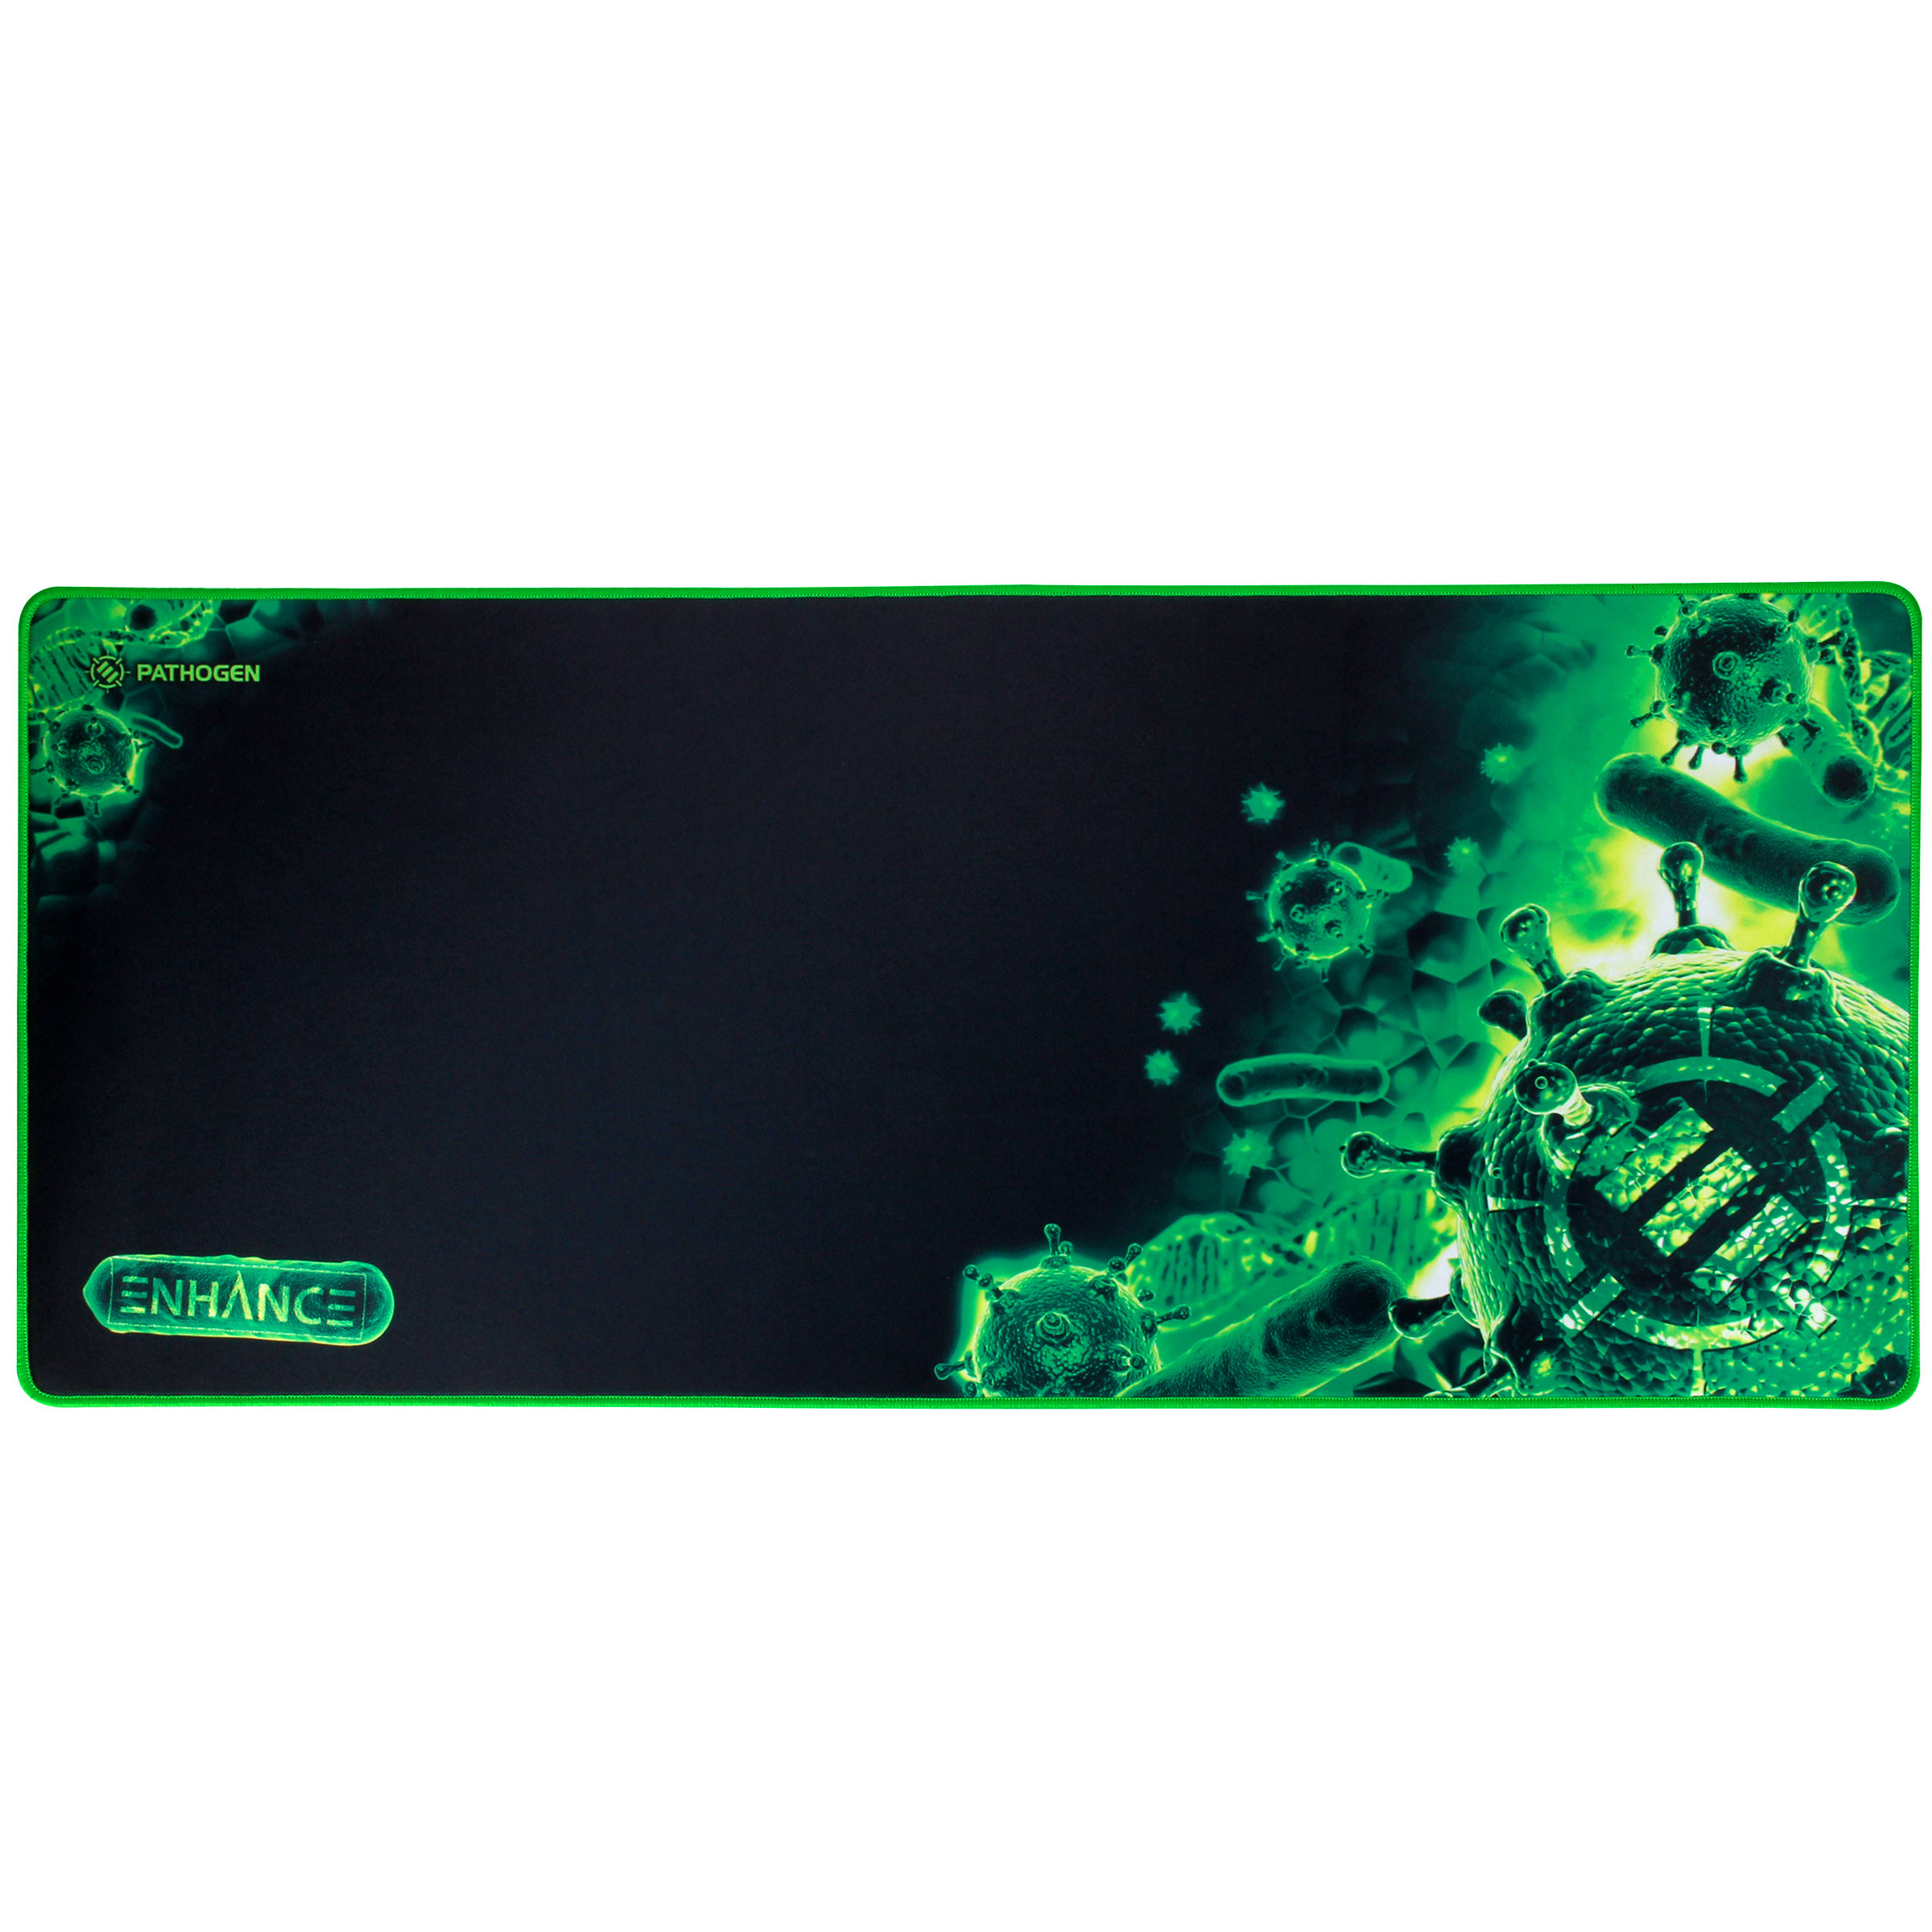 ENHANCE GX-MP2 XL Extended Gaming Mouse Pad Mat (31.5? x 13.75?) with Low-Friction Tracking Surface 0